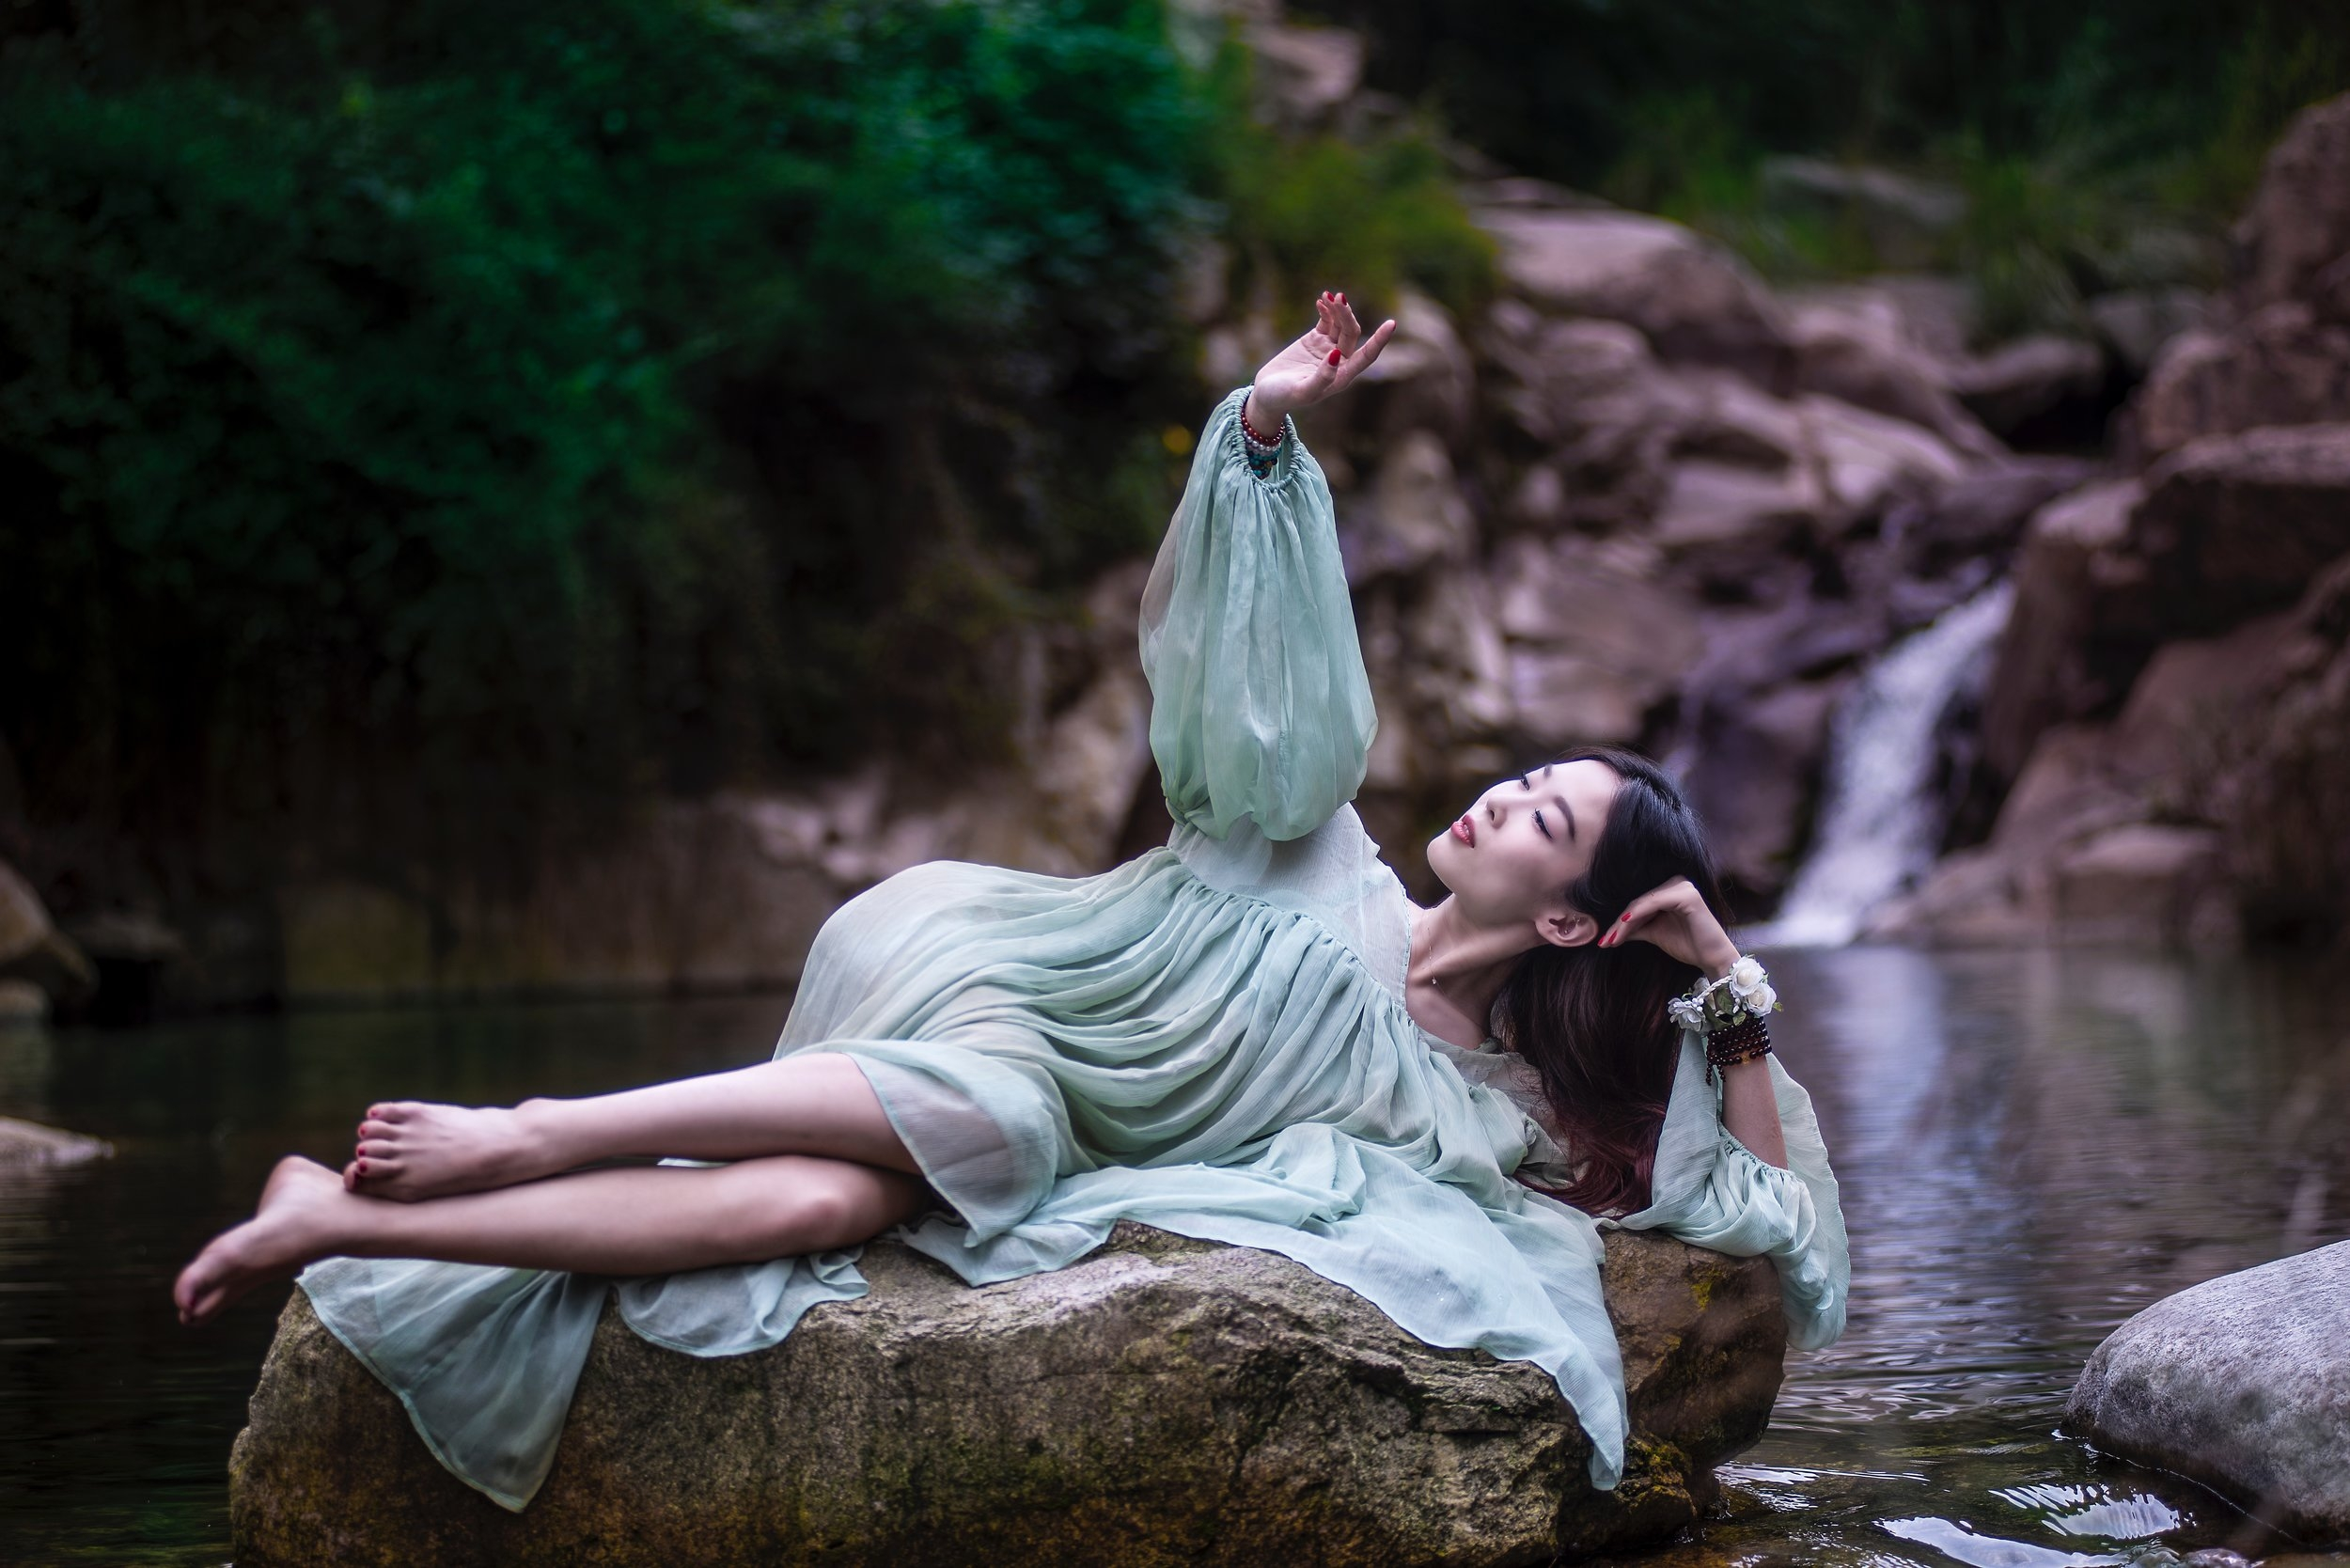 A young woman in a billowy gown relaxes reclining on a large rock before a waterfall